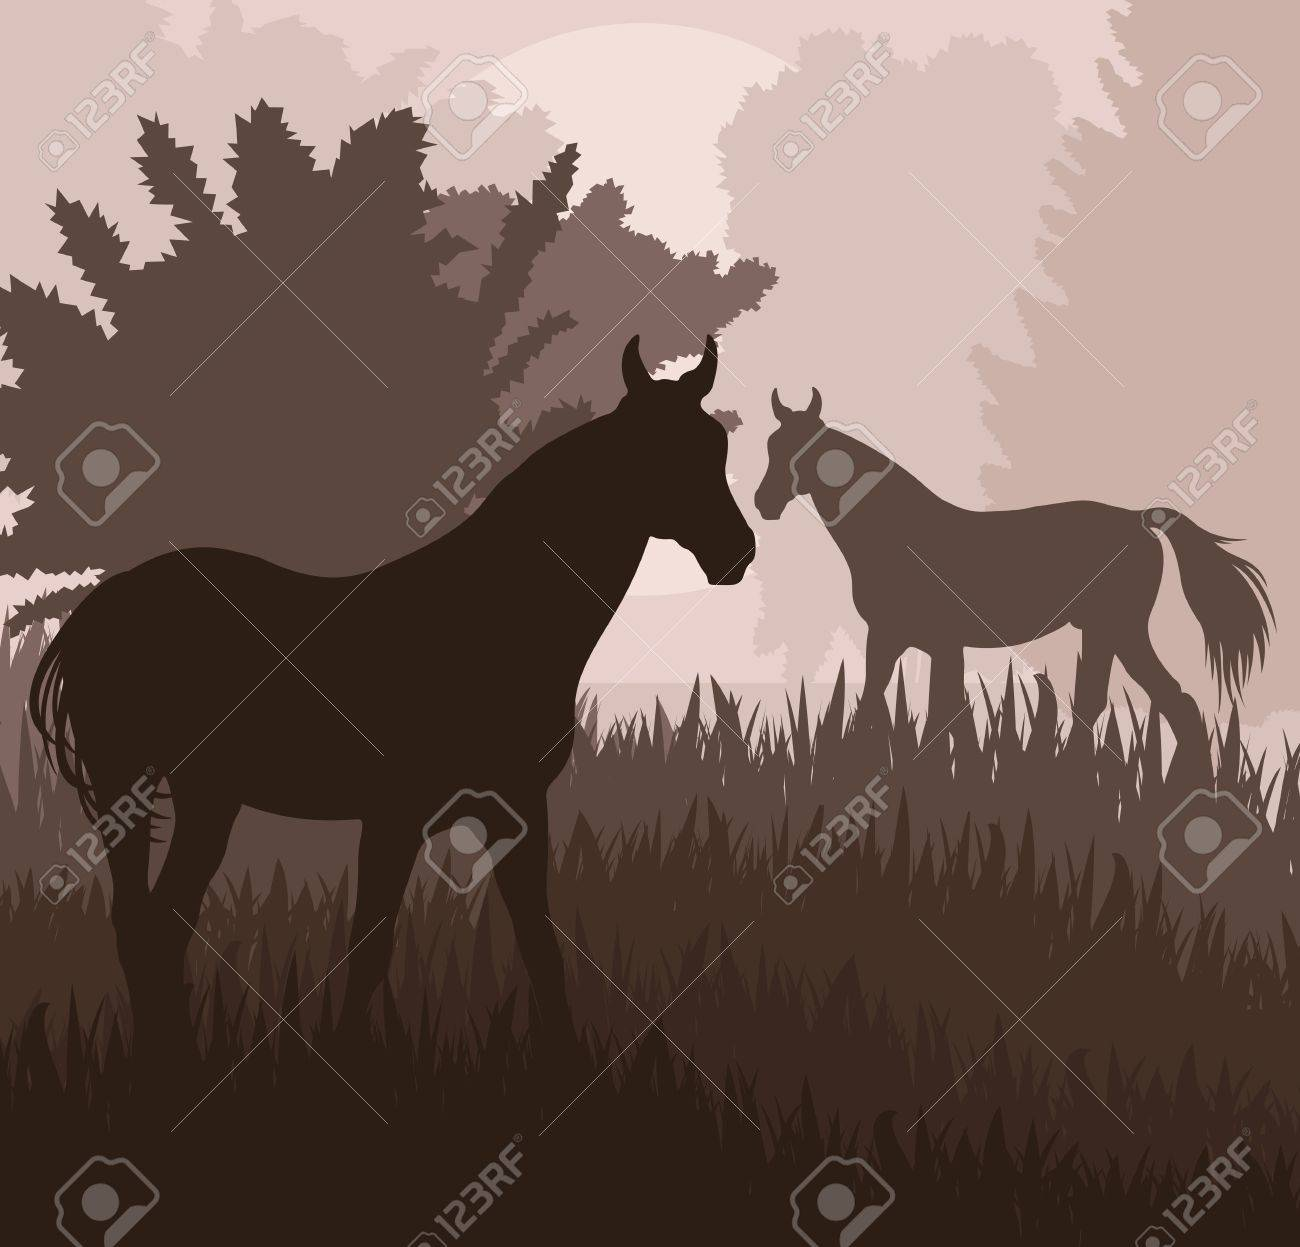 Horses in field vector background for poster Stock Vector - 16289086